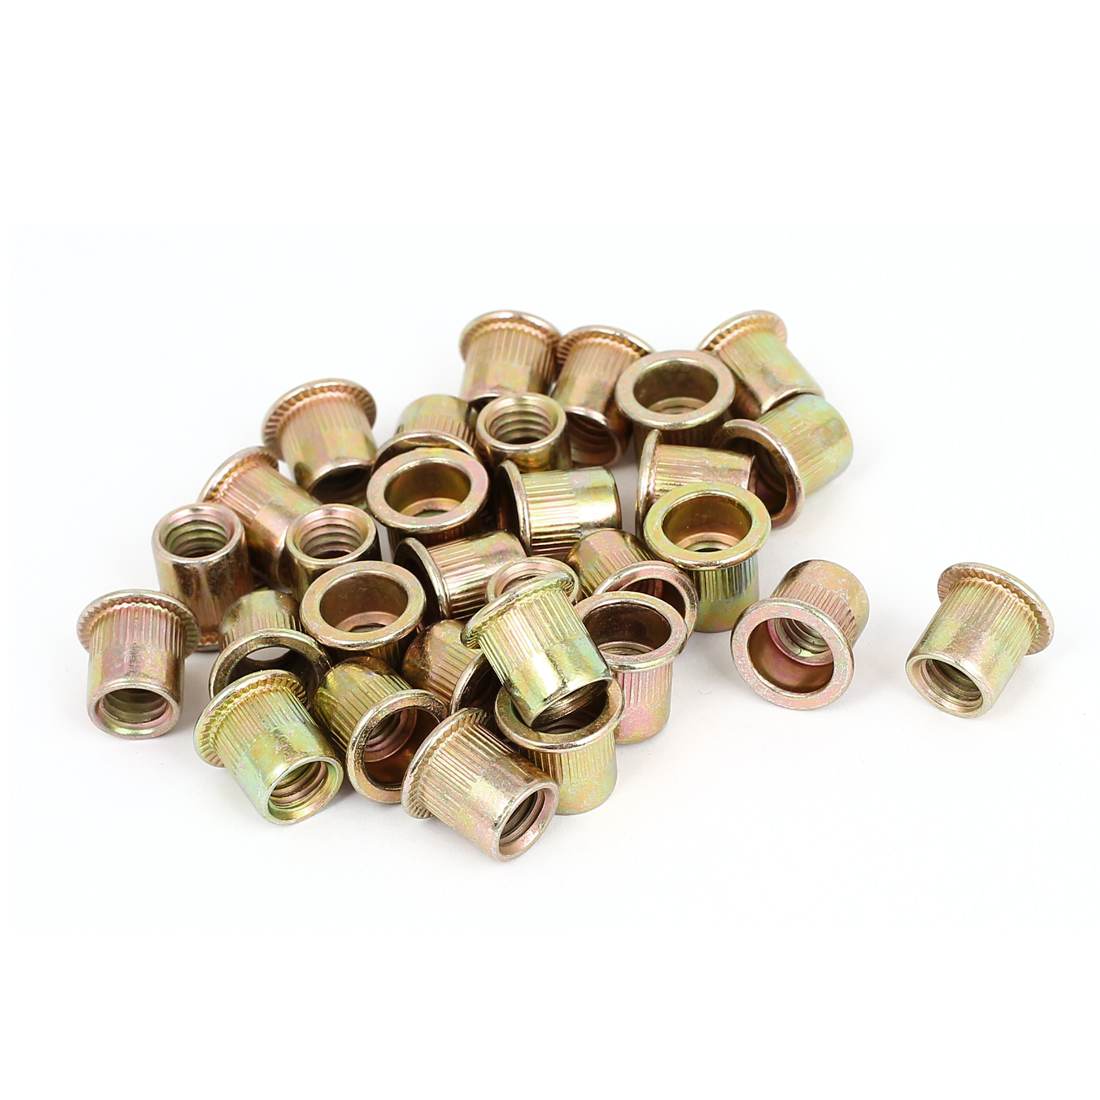 30 Pcs M8x12.5mm Flat Head Closed End Blind Rivet Nuts Insert Nutserts